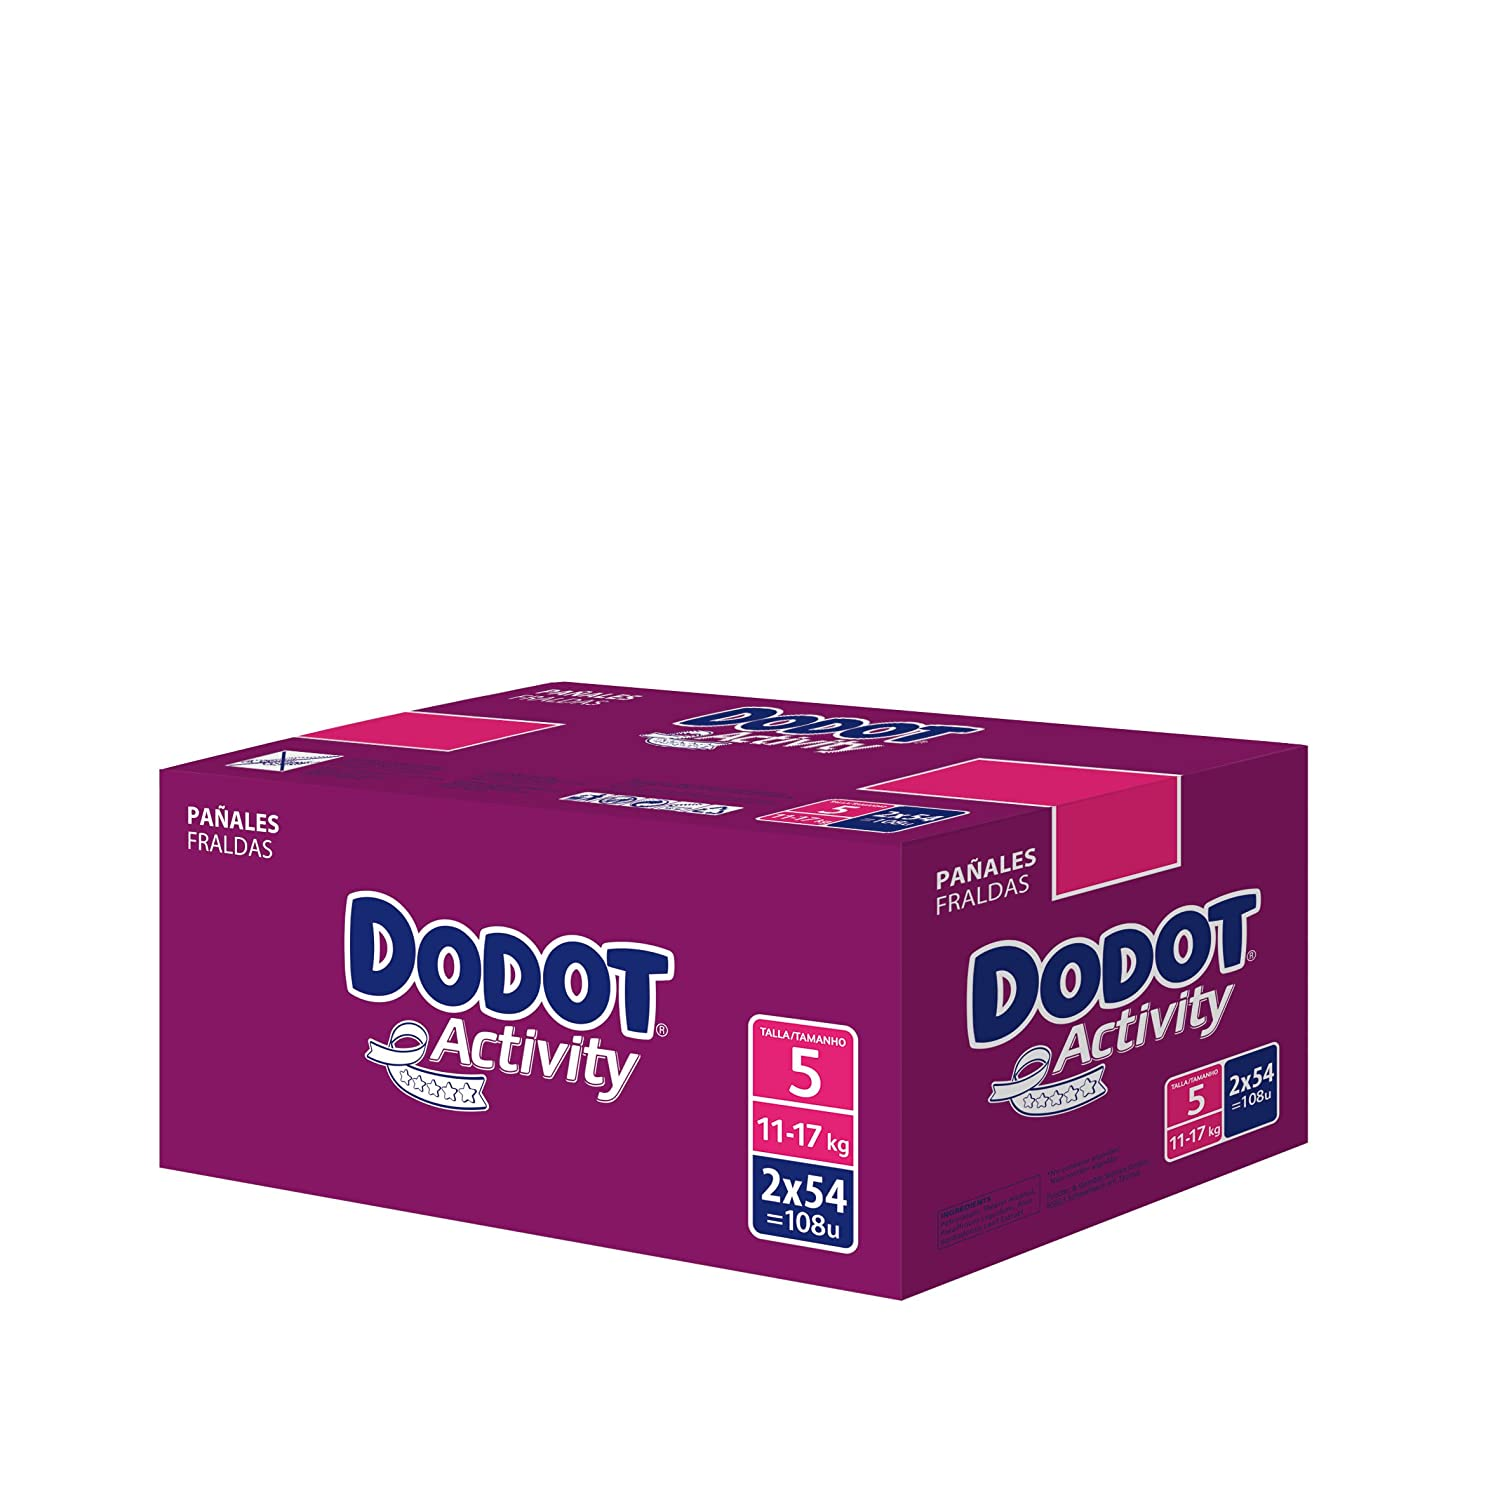 Amazon.com: Dodot Activity - Nappies - Size 5 (13-18 kg) - 2 x 54 Nappies by Dodot: Health & Personal Care